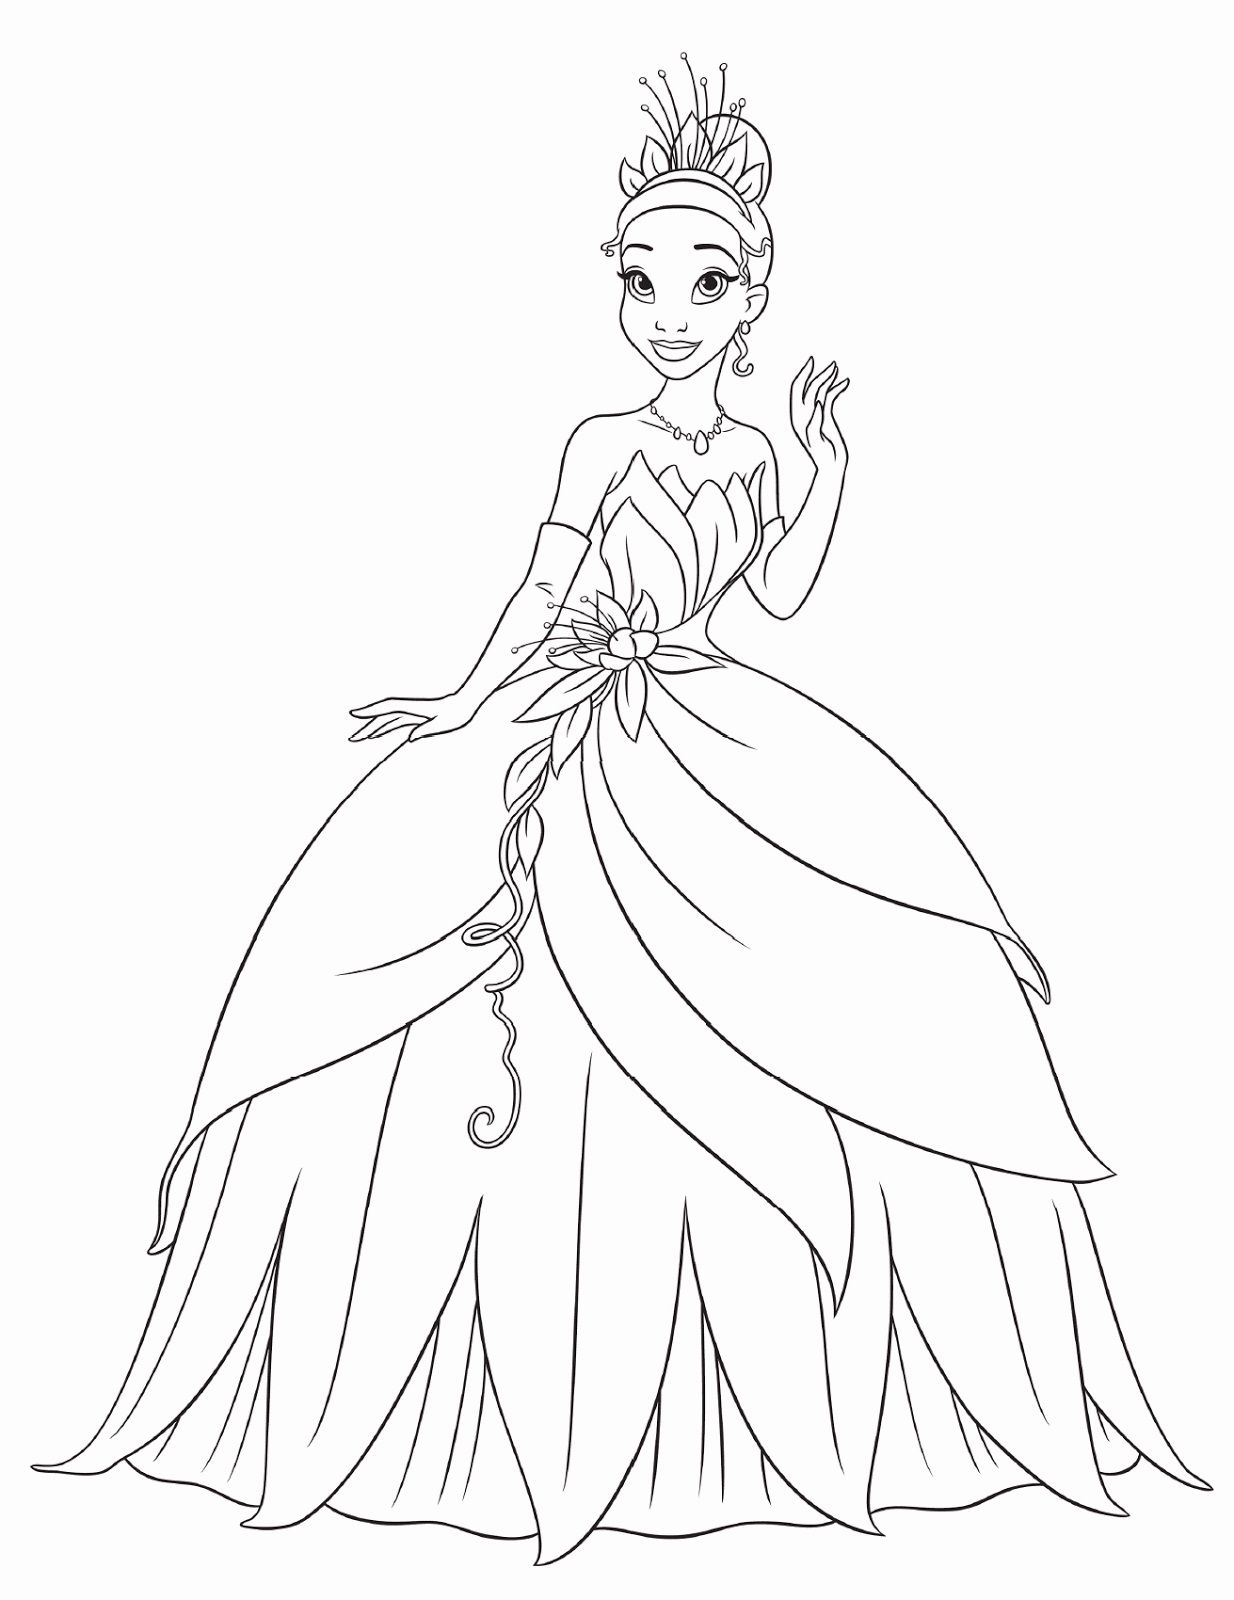 Princess Tiana Coloring Pages For Kids 1234×1600 Disney